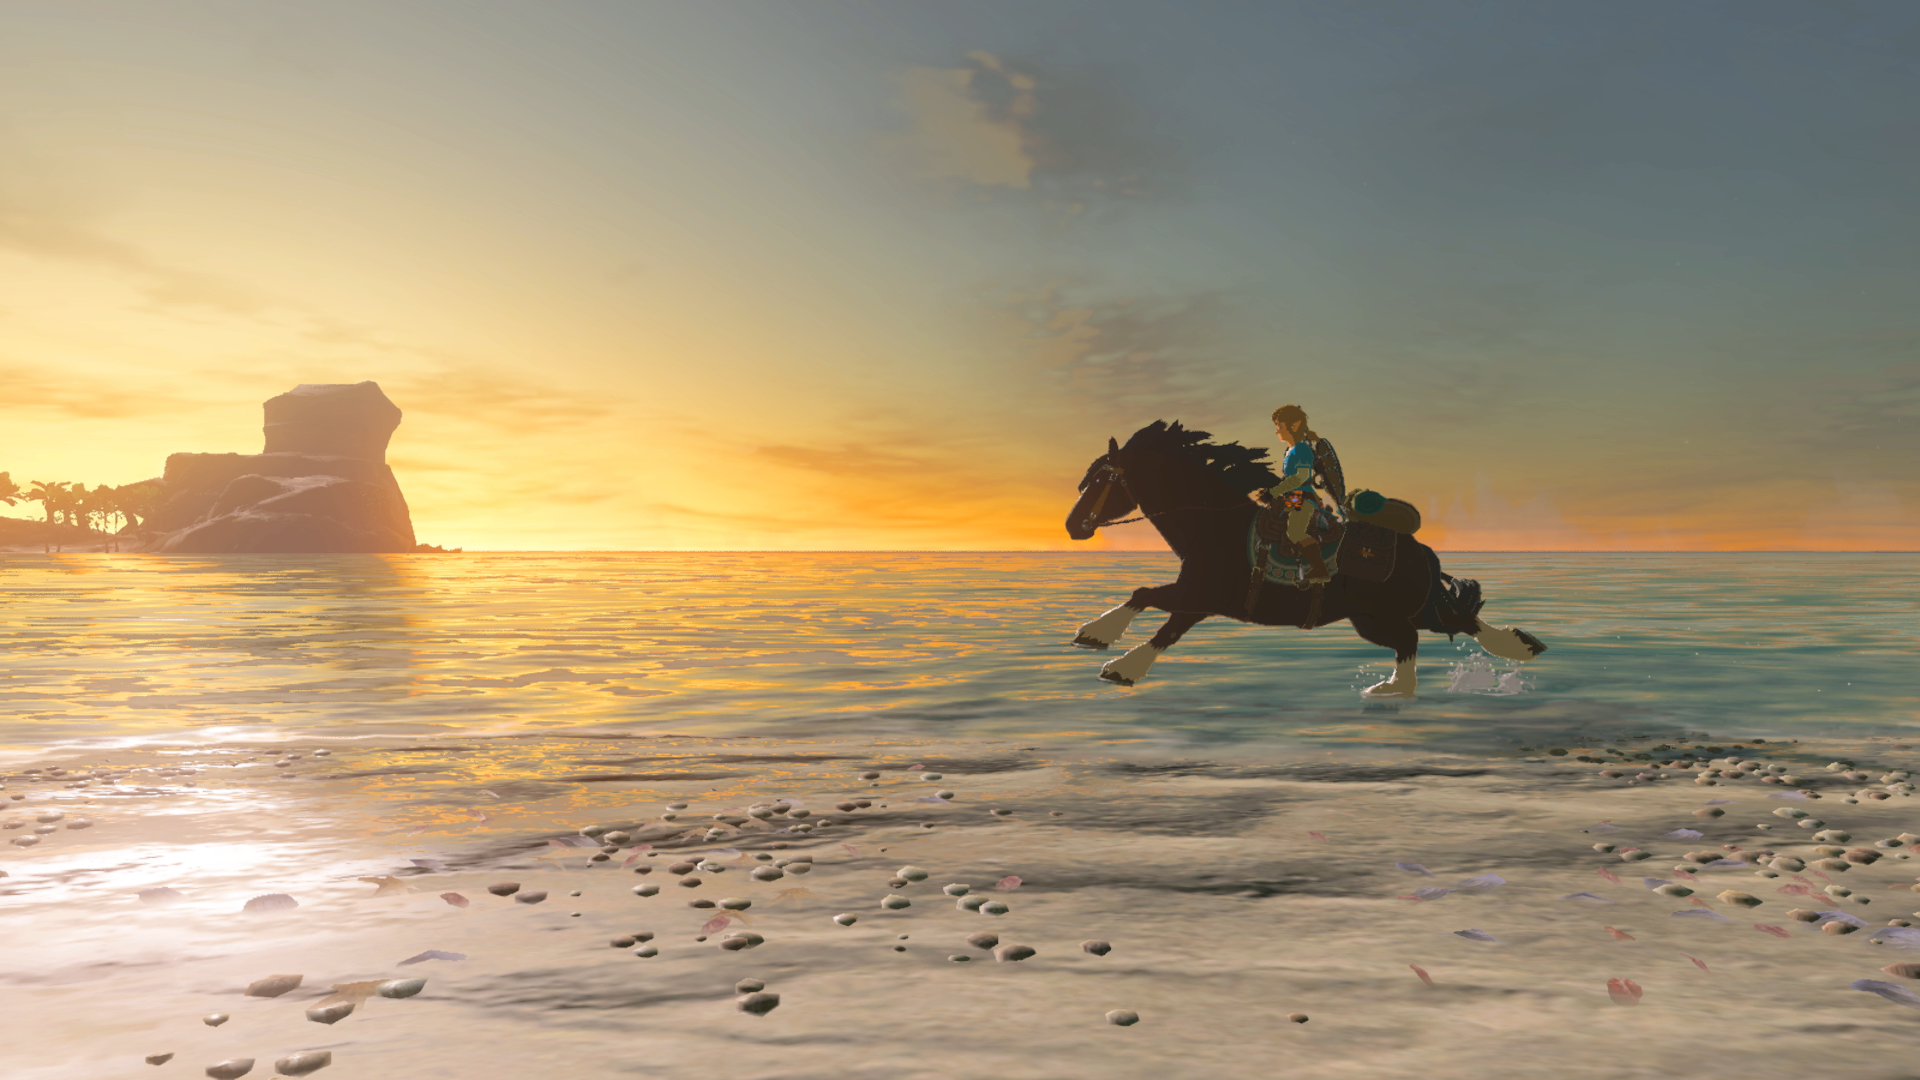 Here's one way to cheat Breath of the Wild's shield-surfing challenge